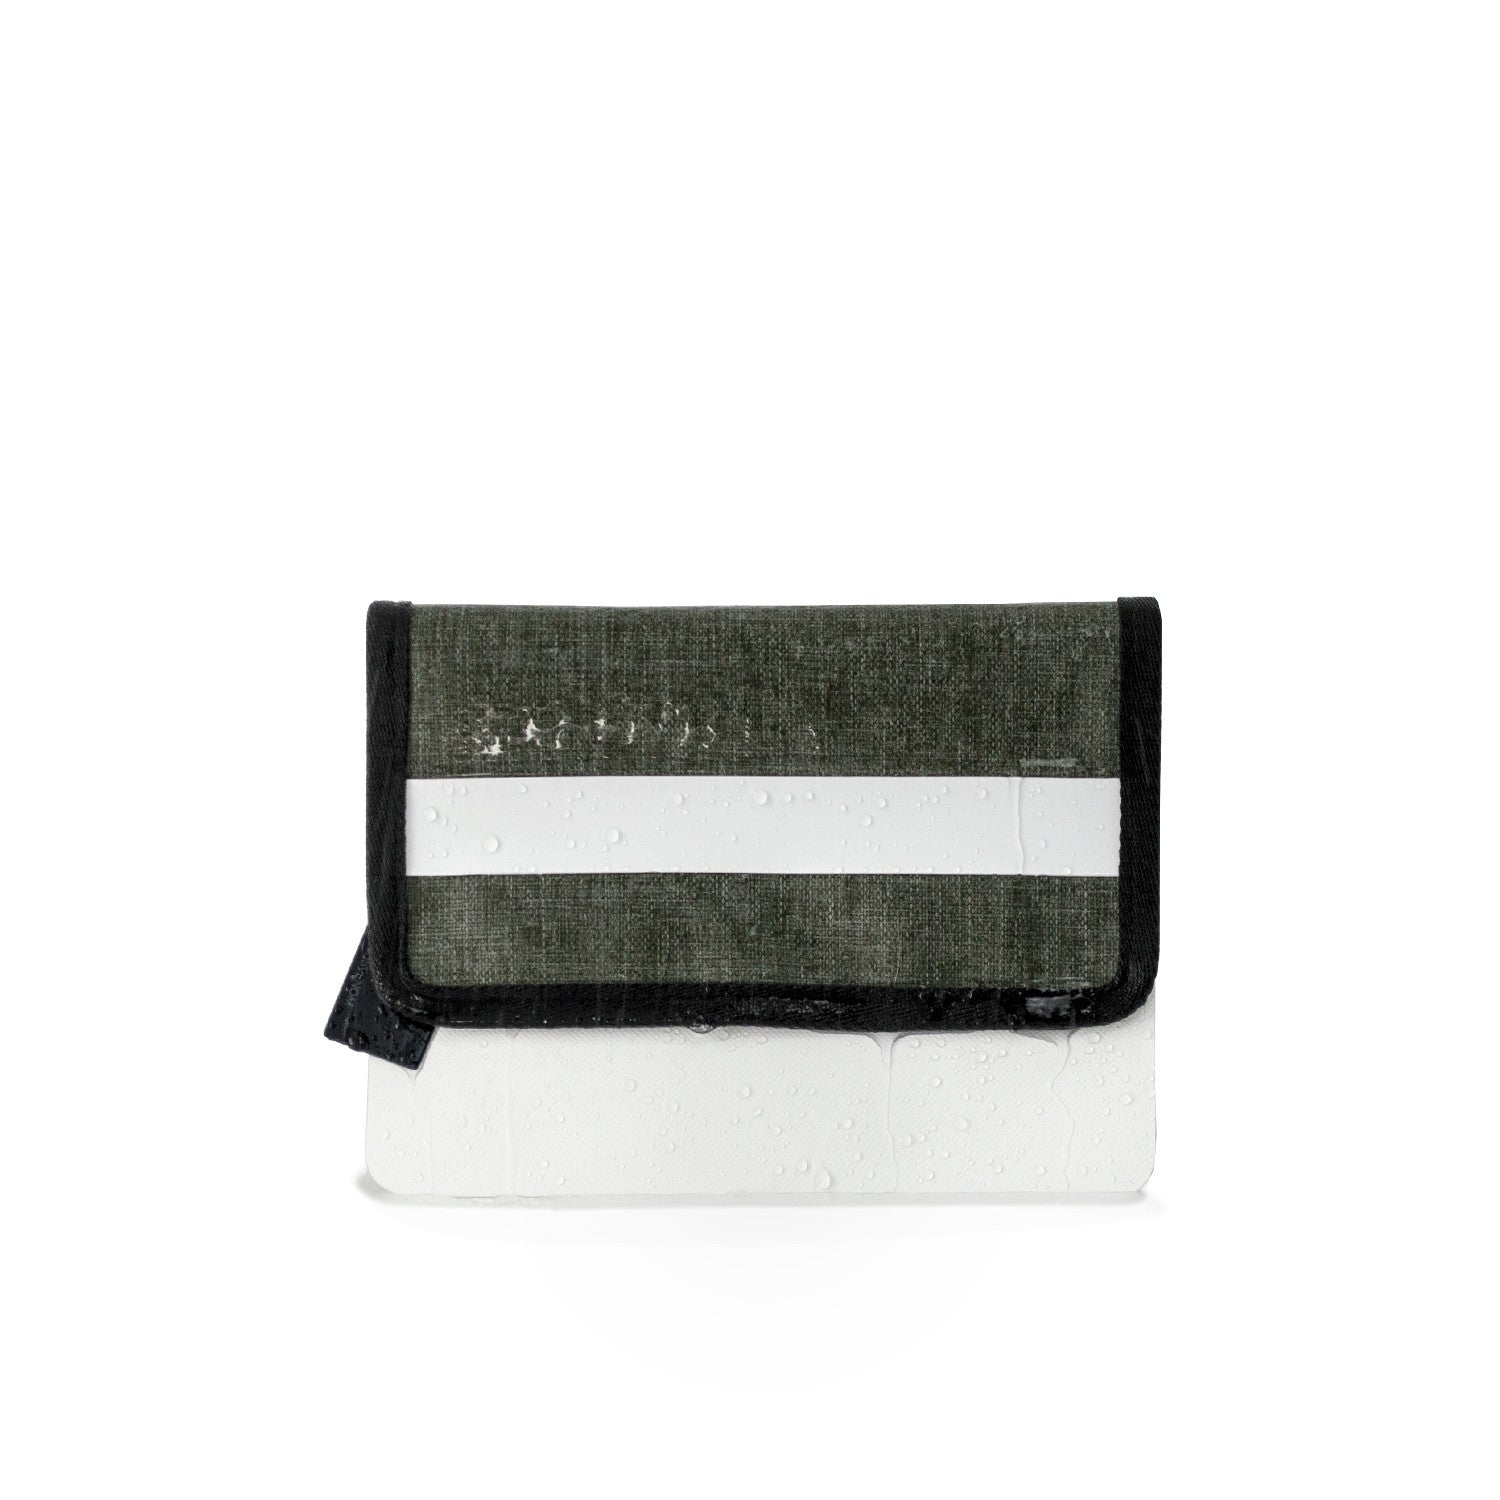 ELEMENTS DRY_WALLET ForestMist